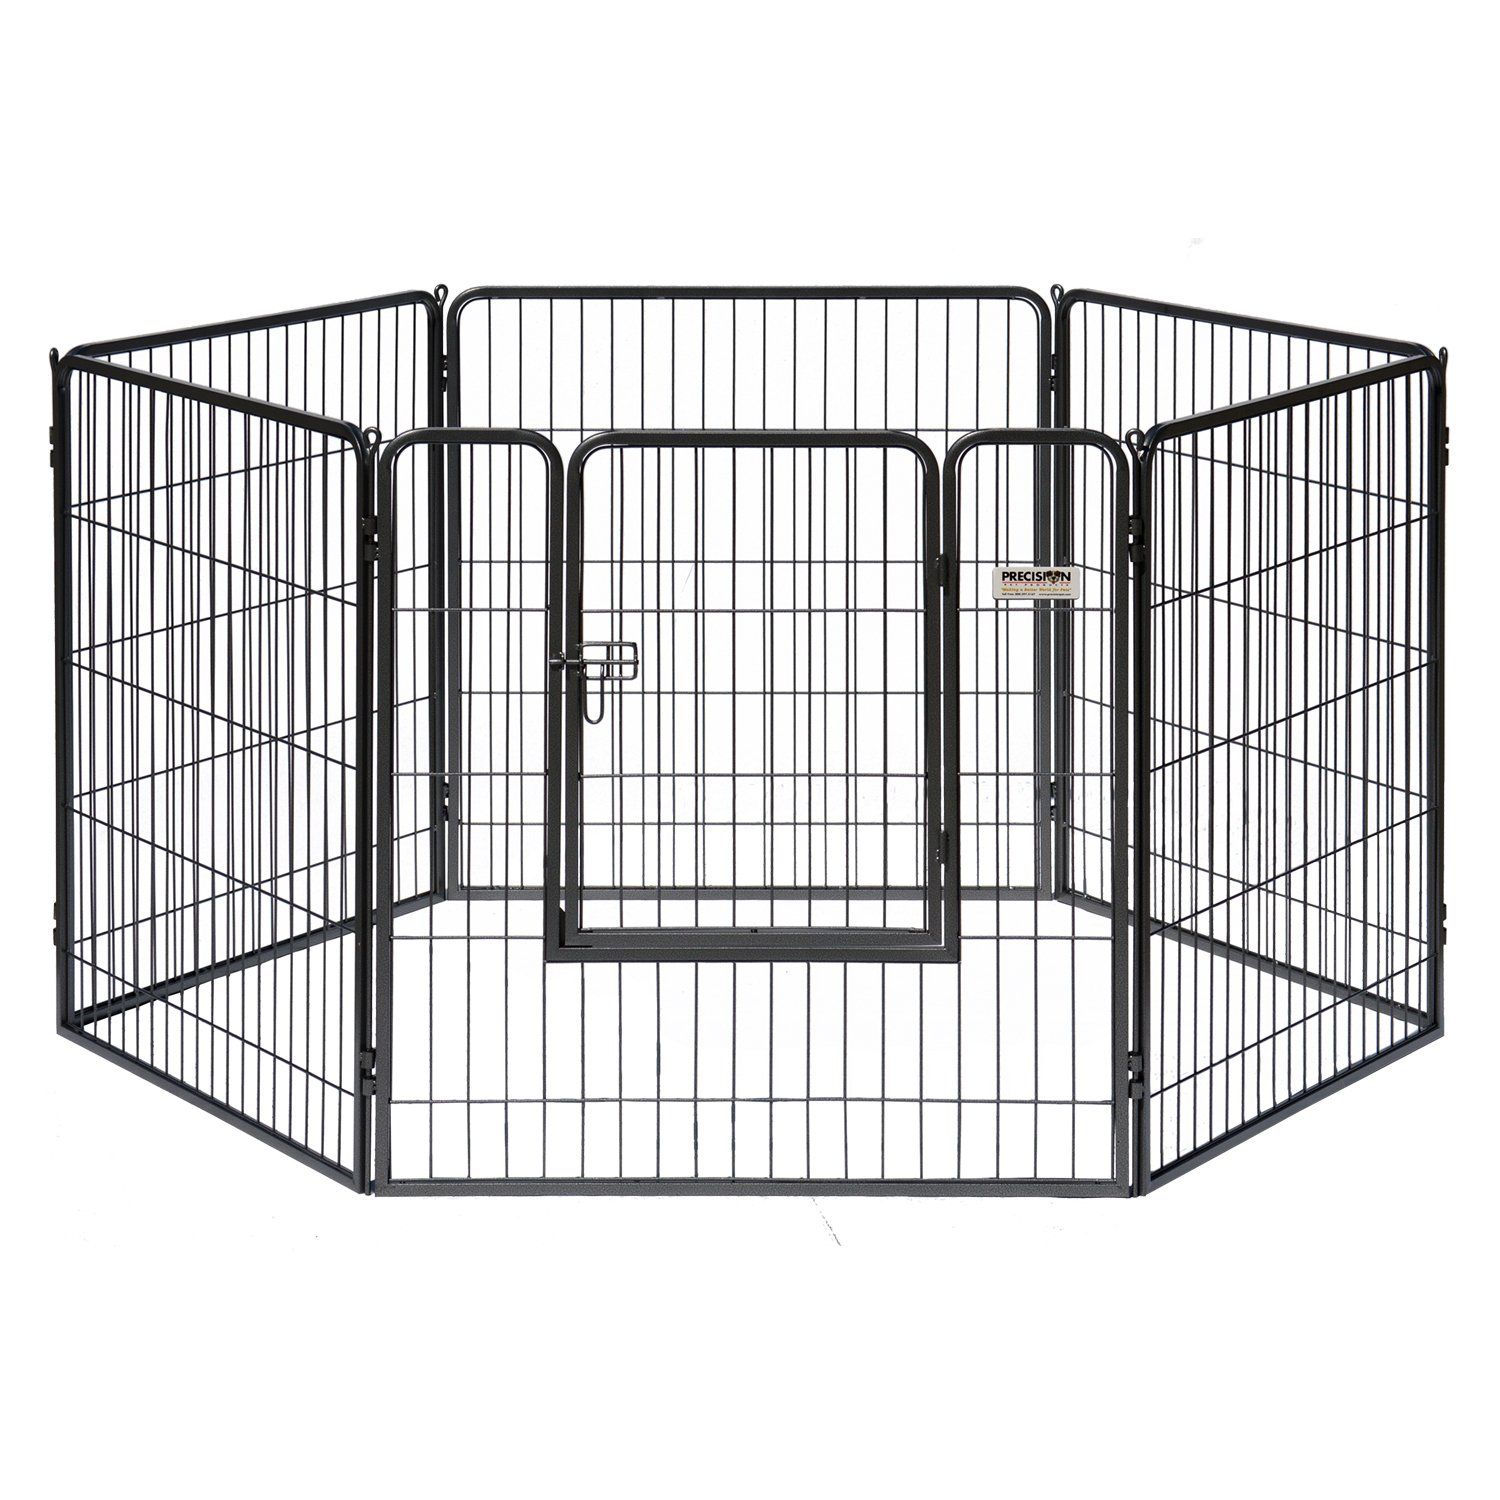 Attirant Dog Gates, Doors U0026 Pens: Indoor U0026 Outdoor Pet Gates | Petco